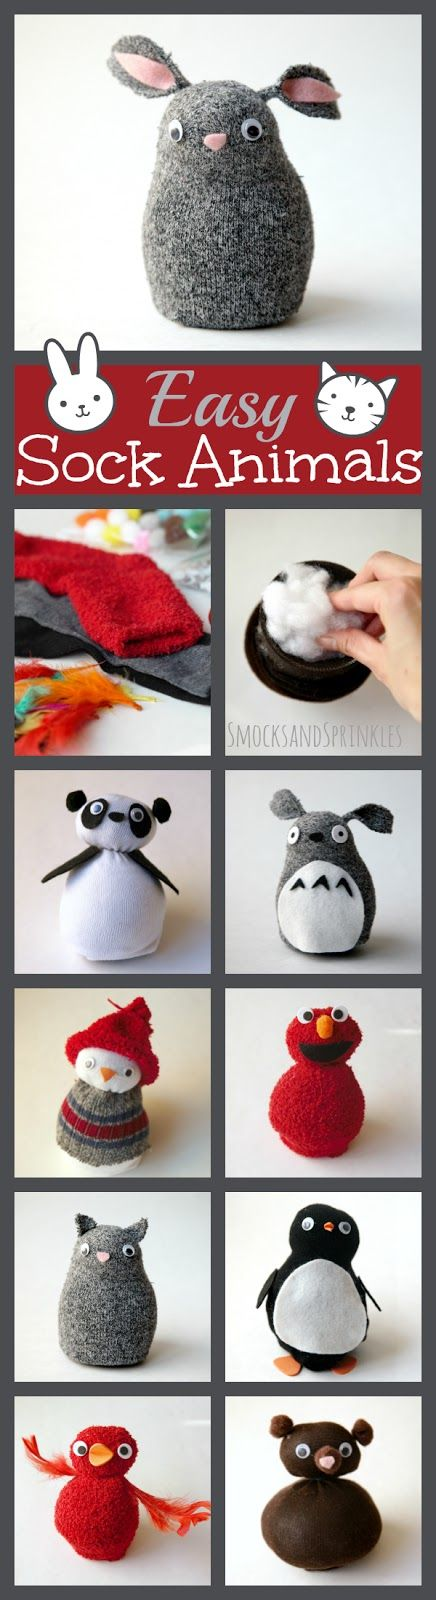 Easy and cute no-sew sock animals                                                                                                                                                     More